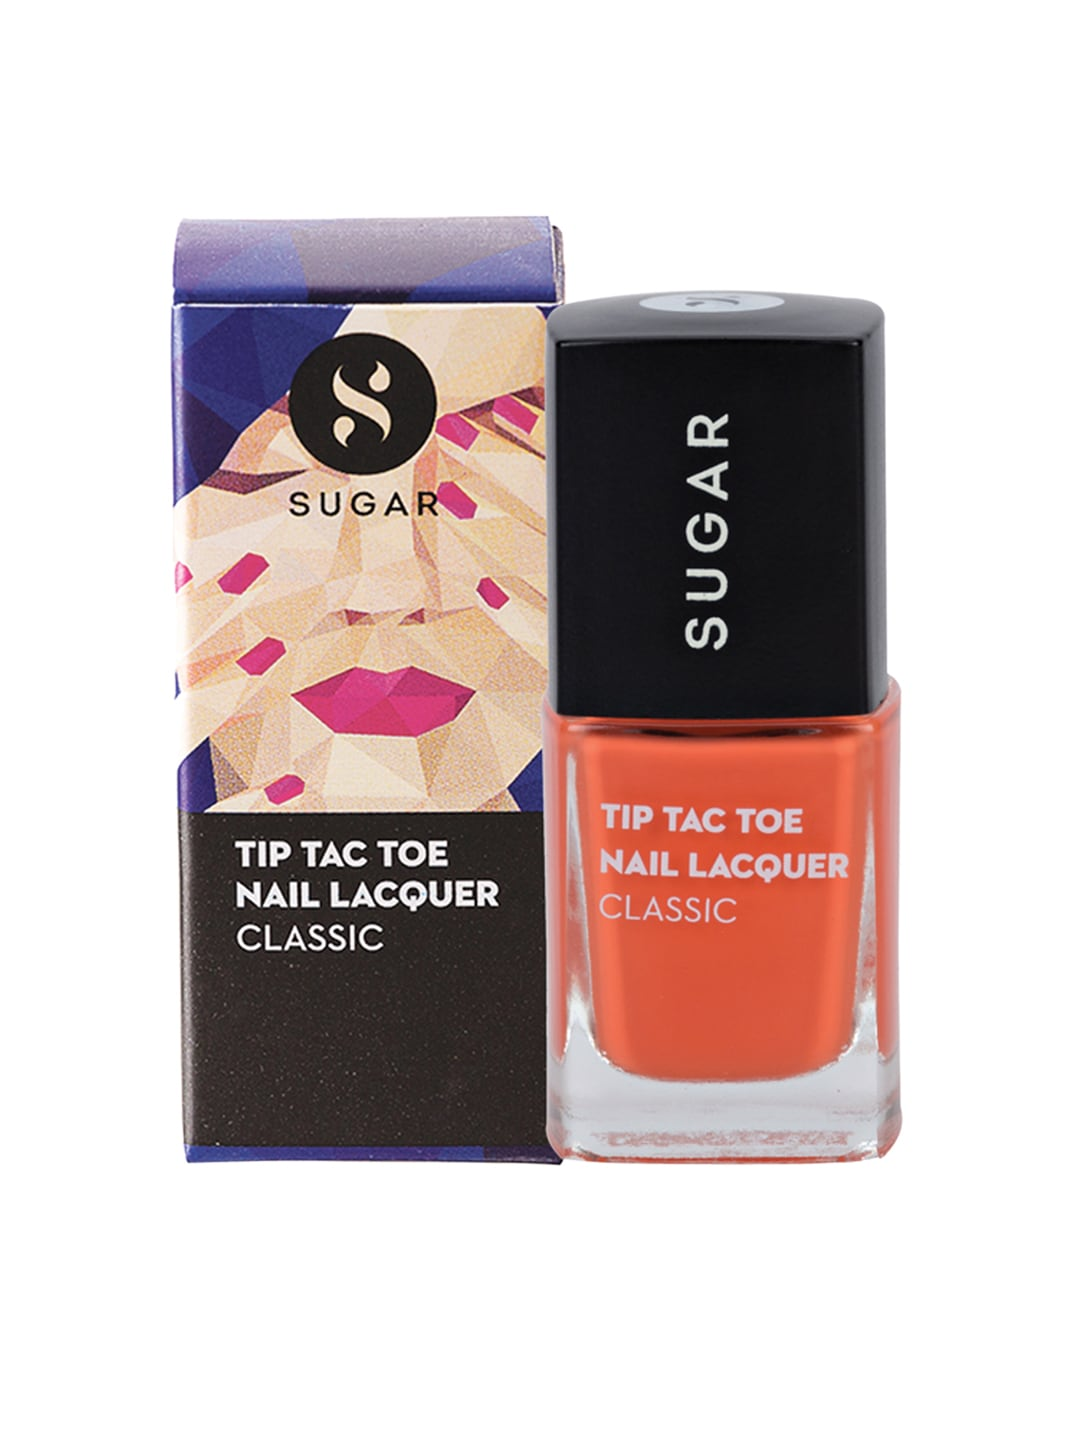 SUGAR Tip Tac Toe Classic Nail Lacquer - 029 Fuel The Fire image